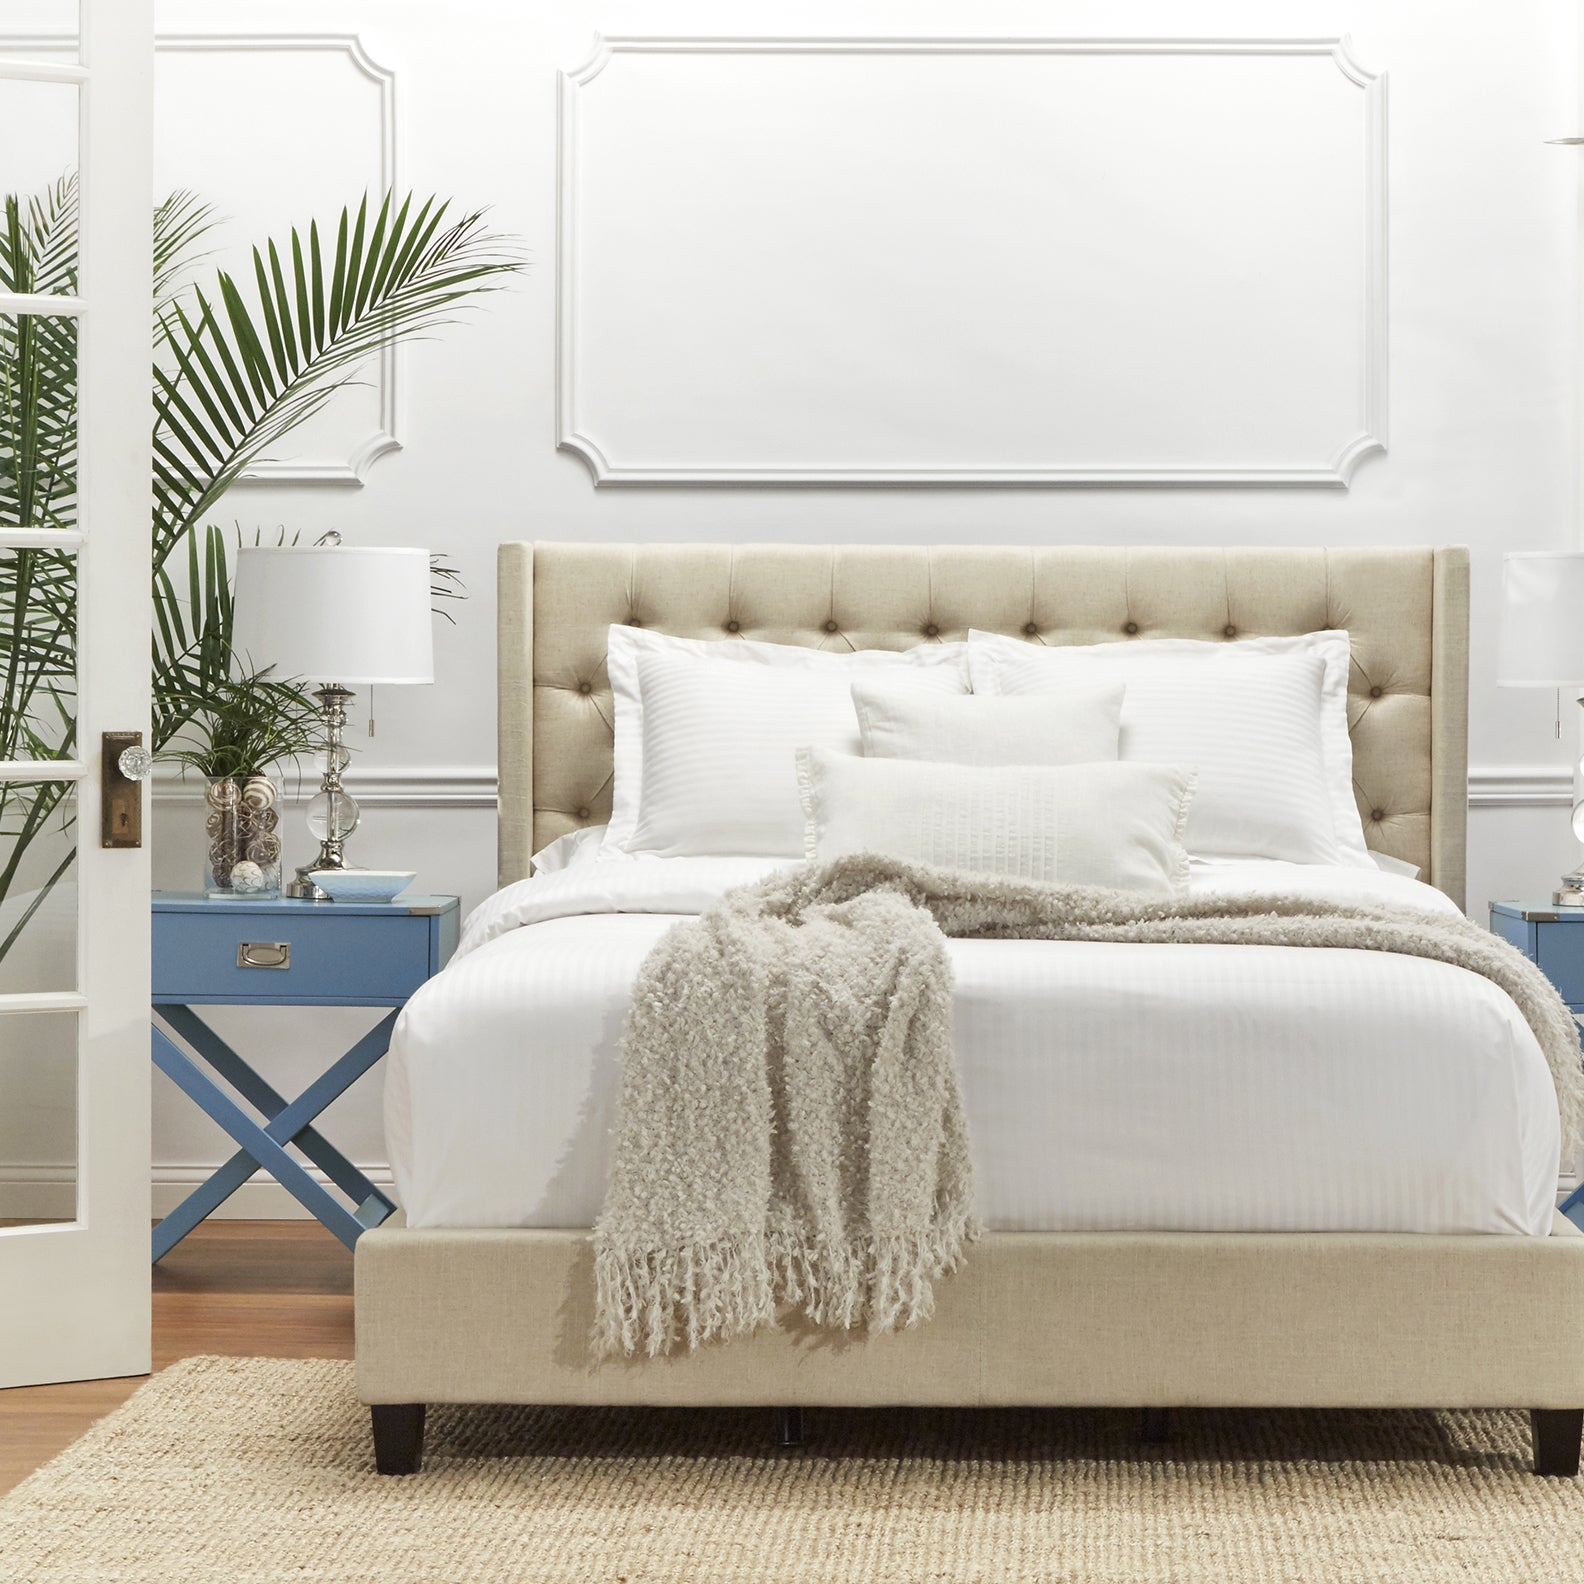 Naples Wingback Button Tufted Upholstered King Bed by iNSPIRE Q Artisan -  Free Shipping Today - Overstock.com - 16659692